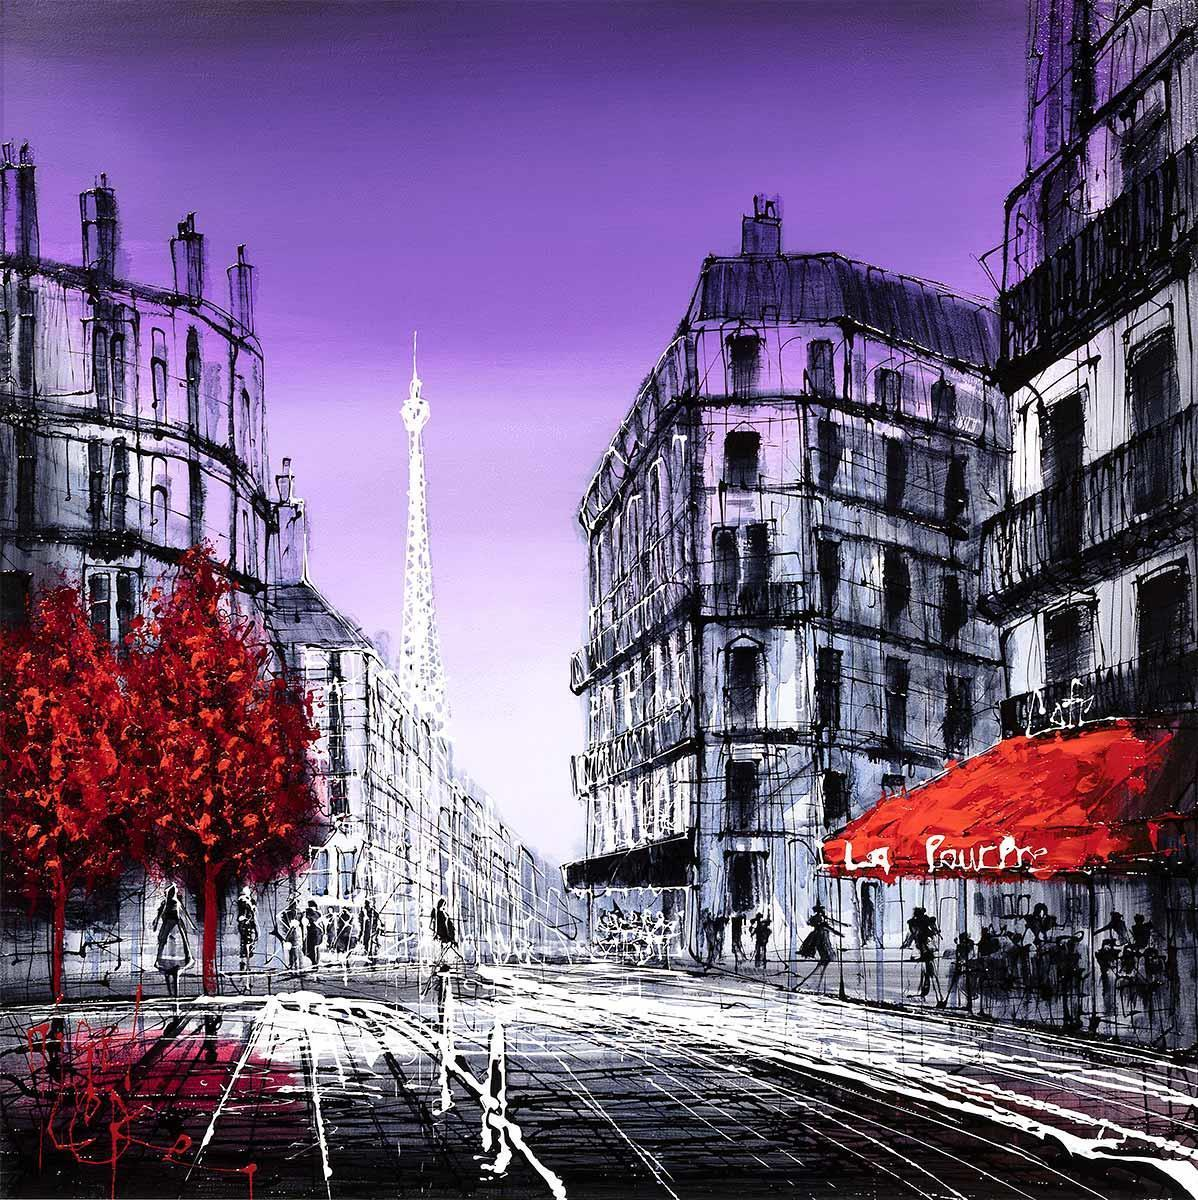 Paris Dreaming - Original Nigel Cooke